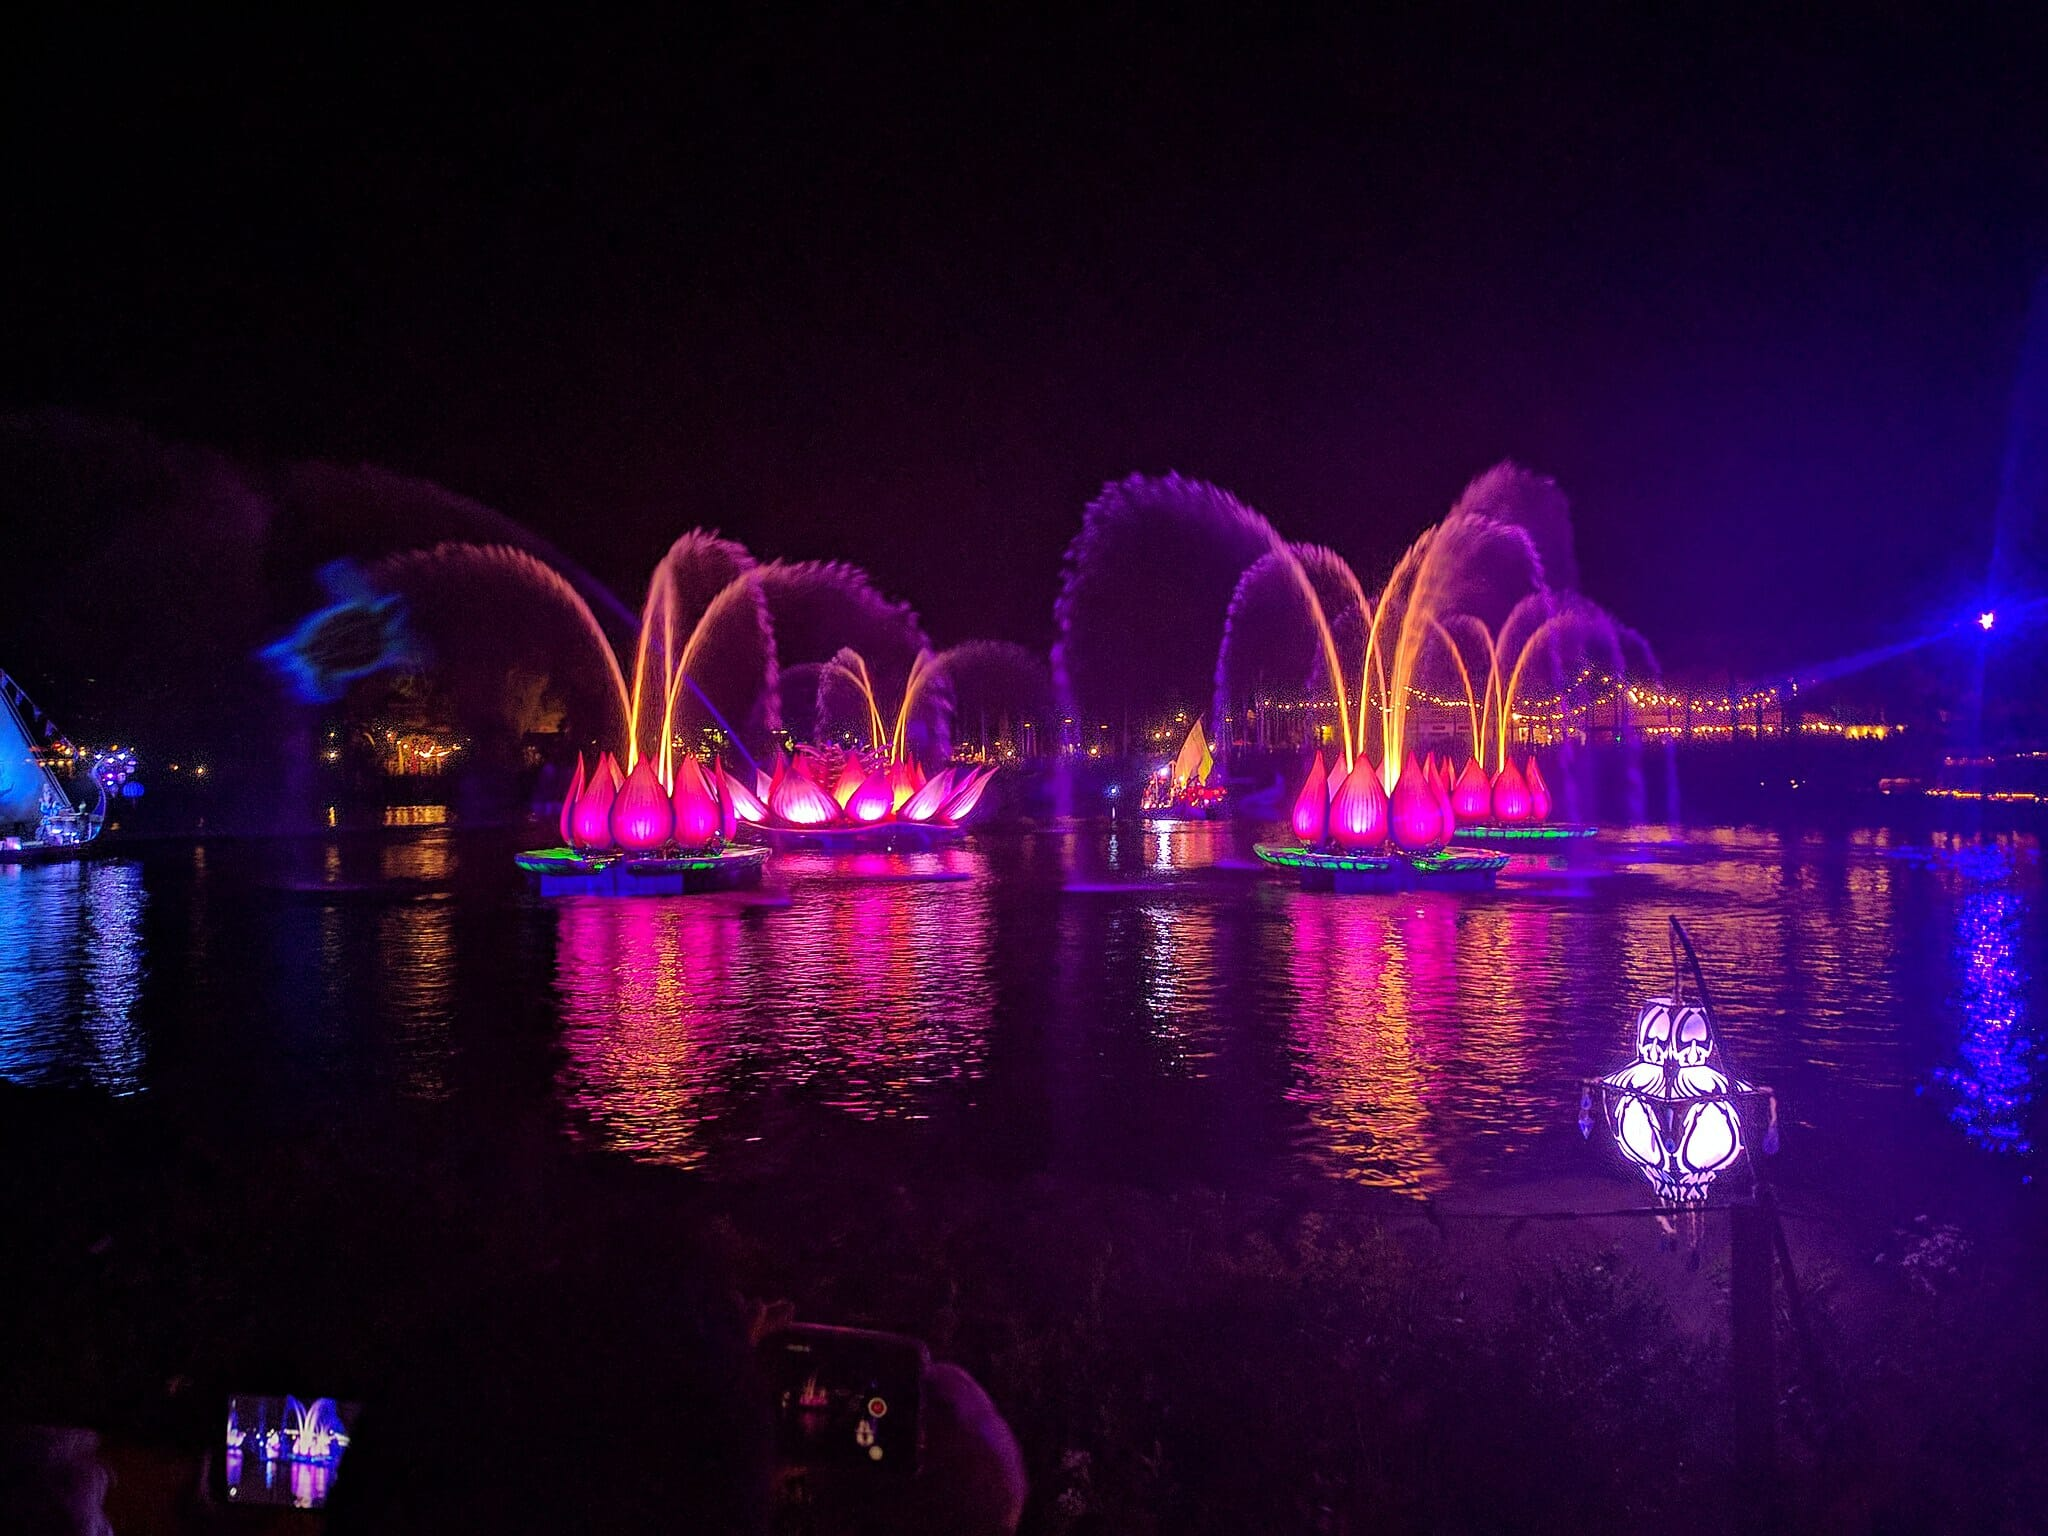 Yellow water sprays coming out of large pink pond lilies, with blue lights in the background